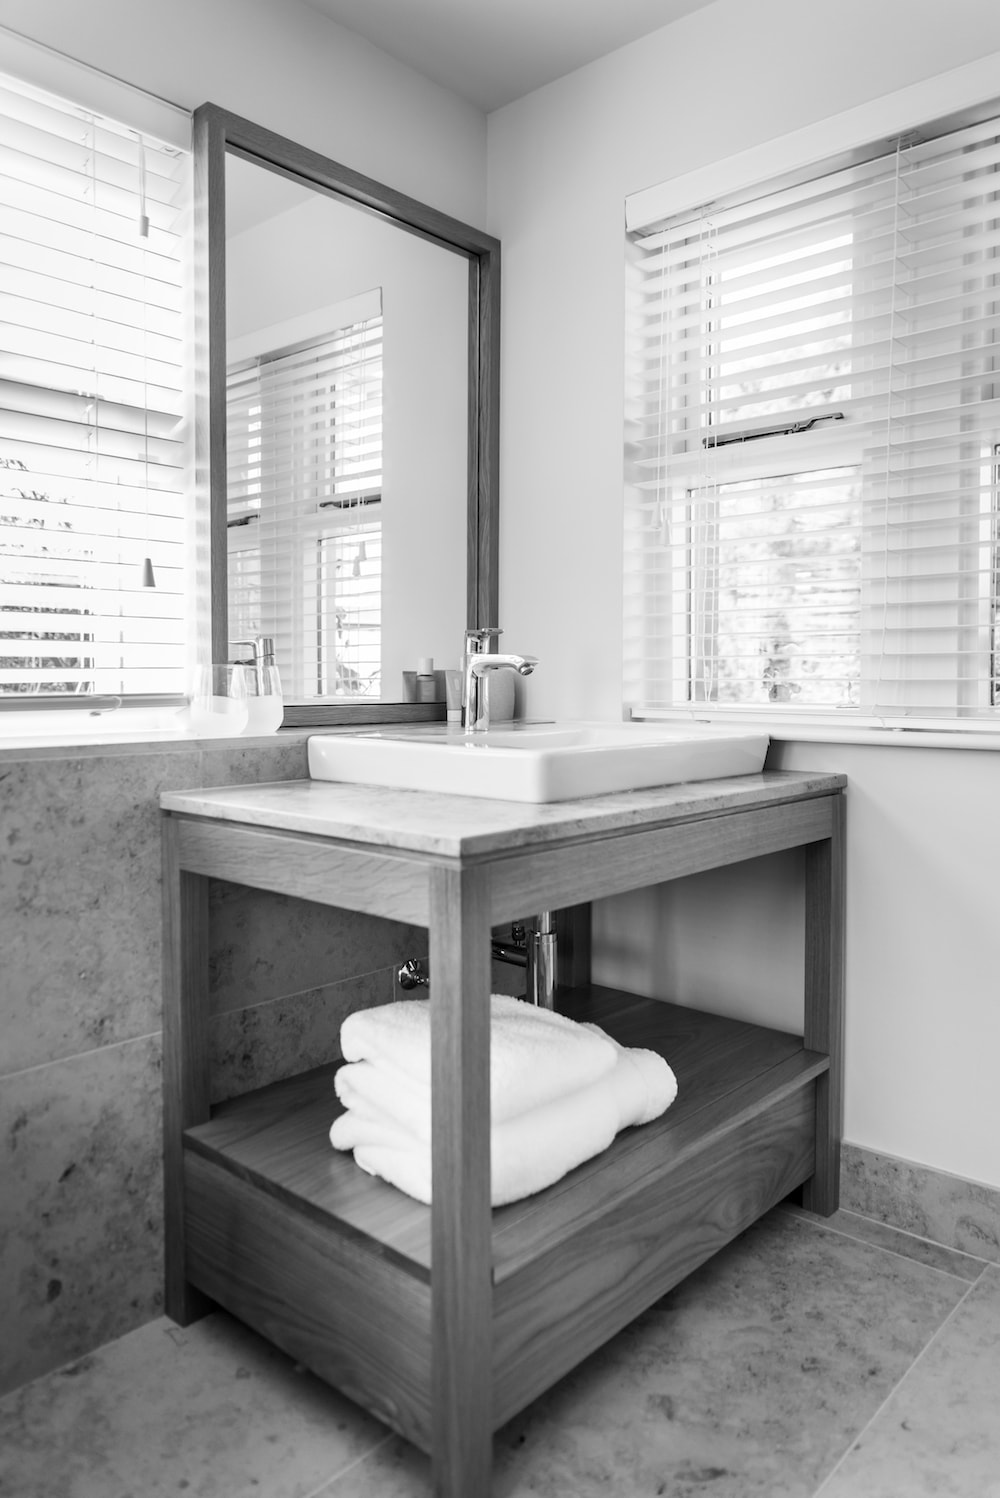 A monochrome image of the house bathroom basin,